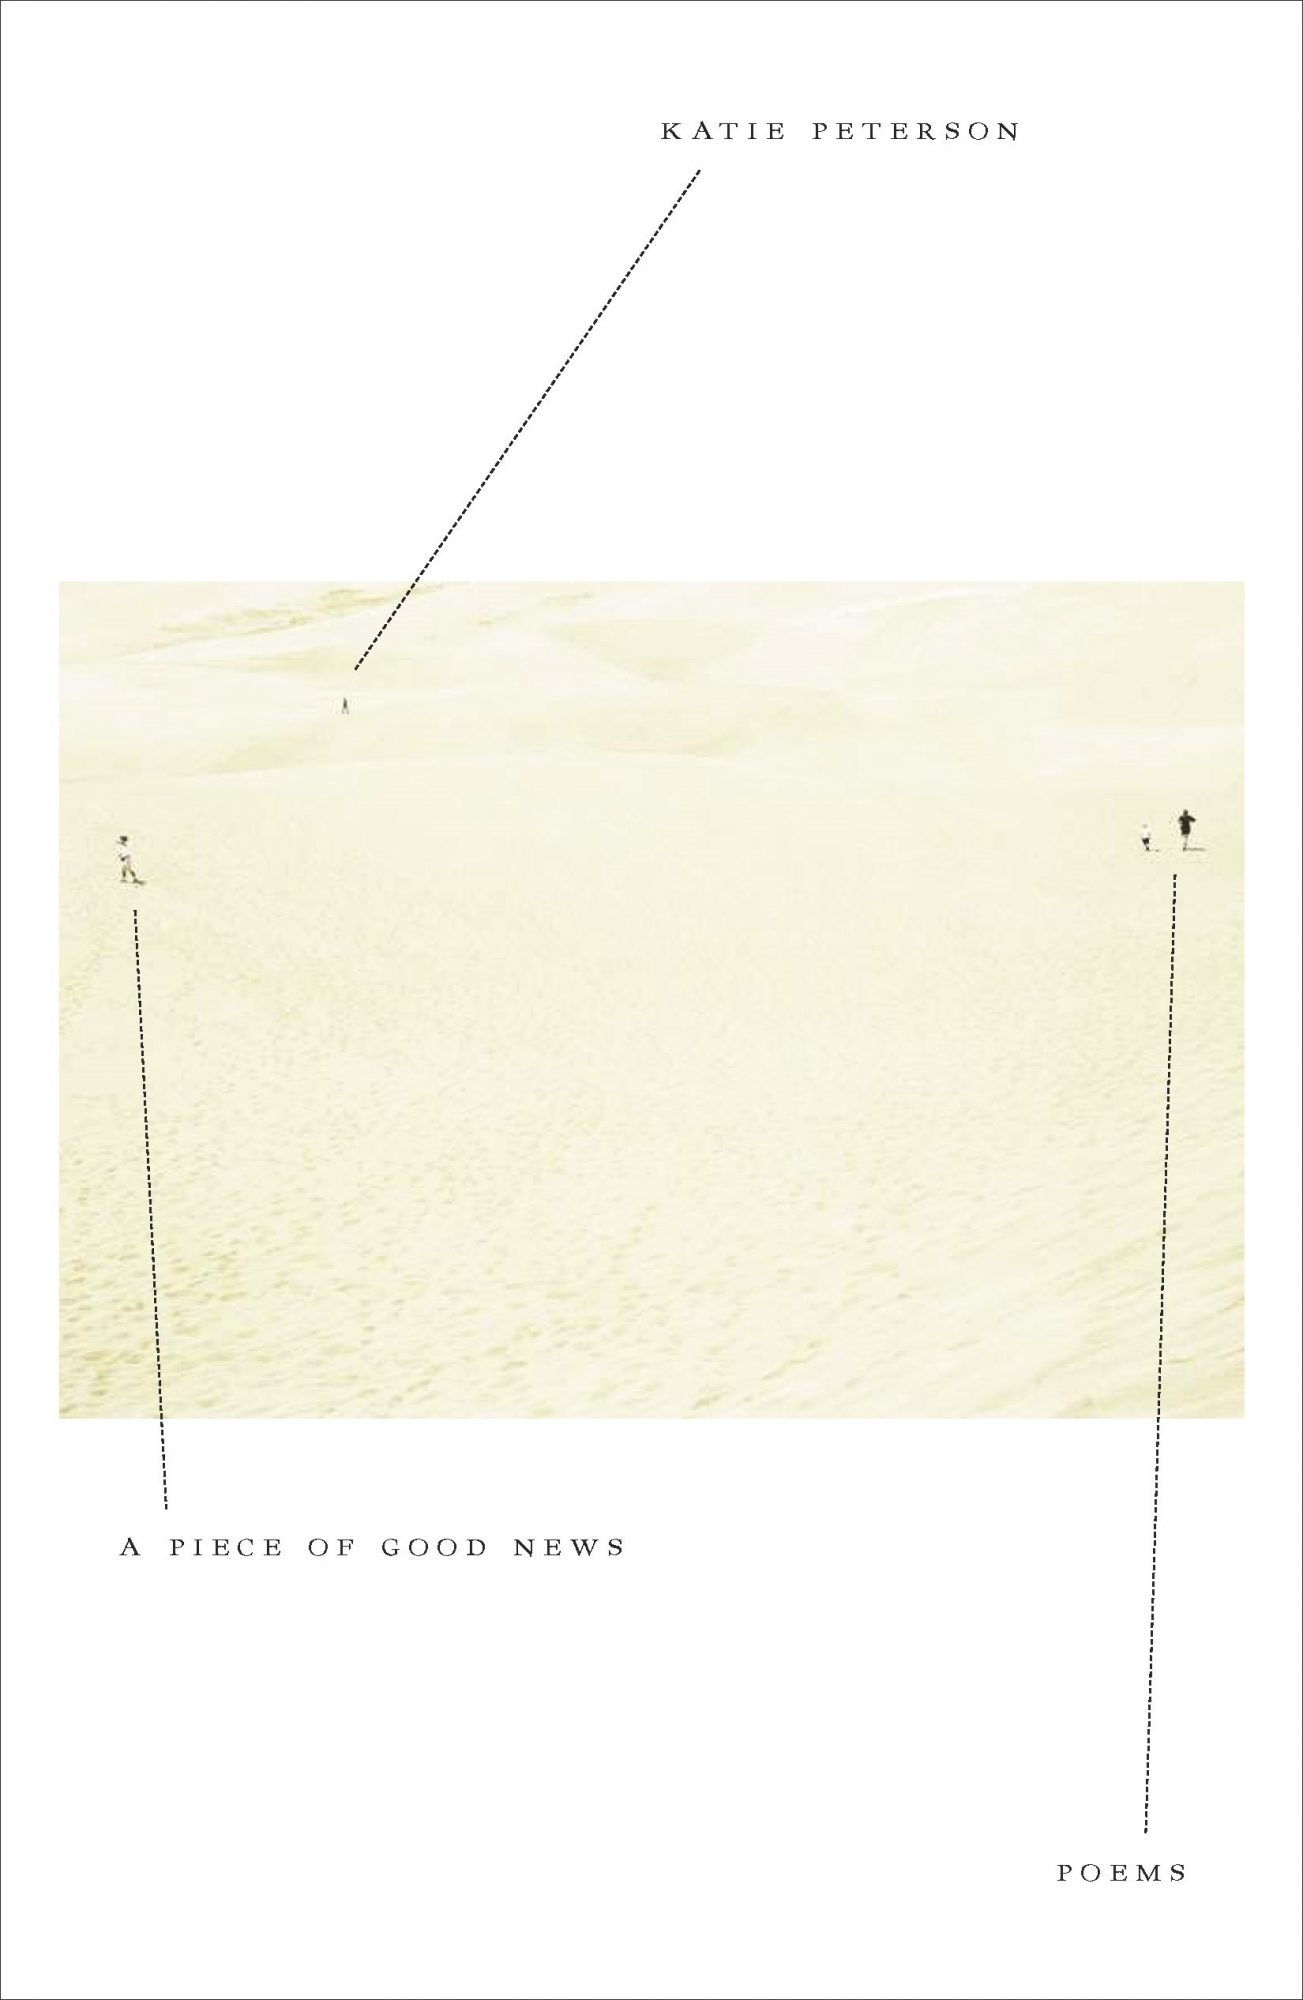 A Piece of Good News: Poems by Katie Peterson